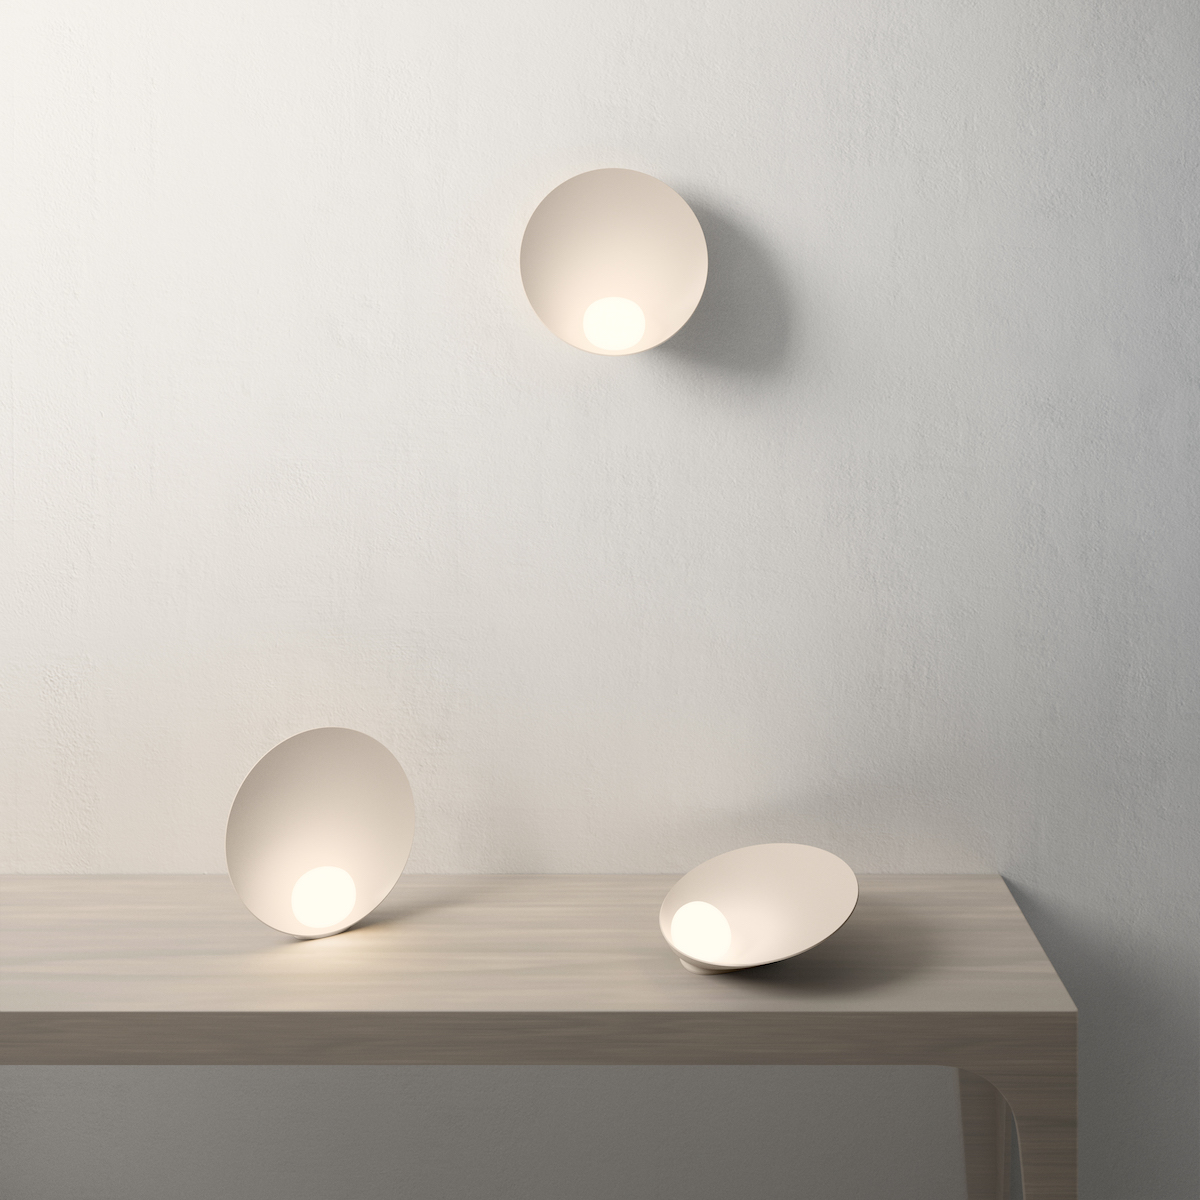 vibia lamps lamp hand blown glass floor wall table illumination